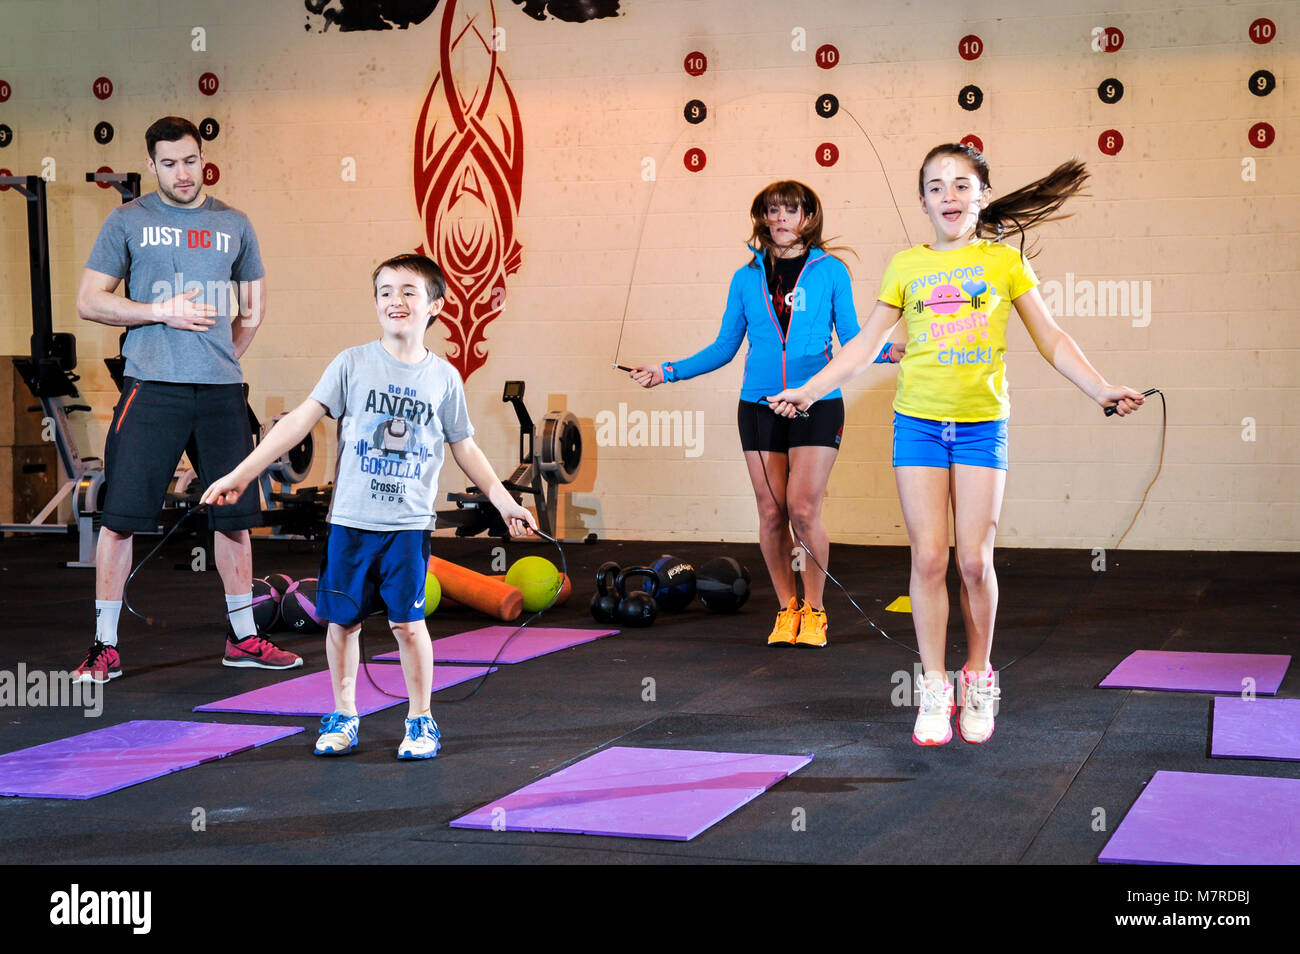 A mother and her two children are skipping during an exercise class in a gym with a gym instructor. - Stock Image